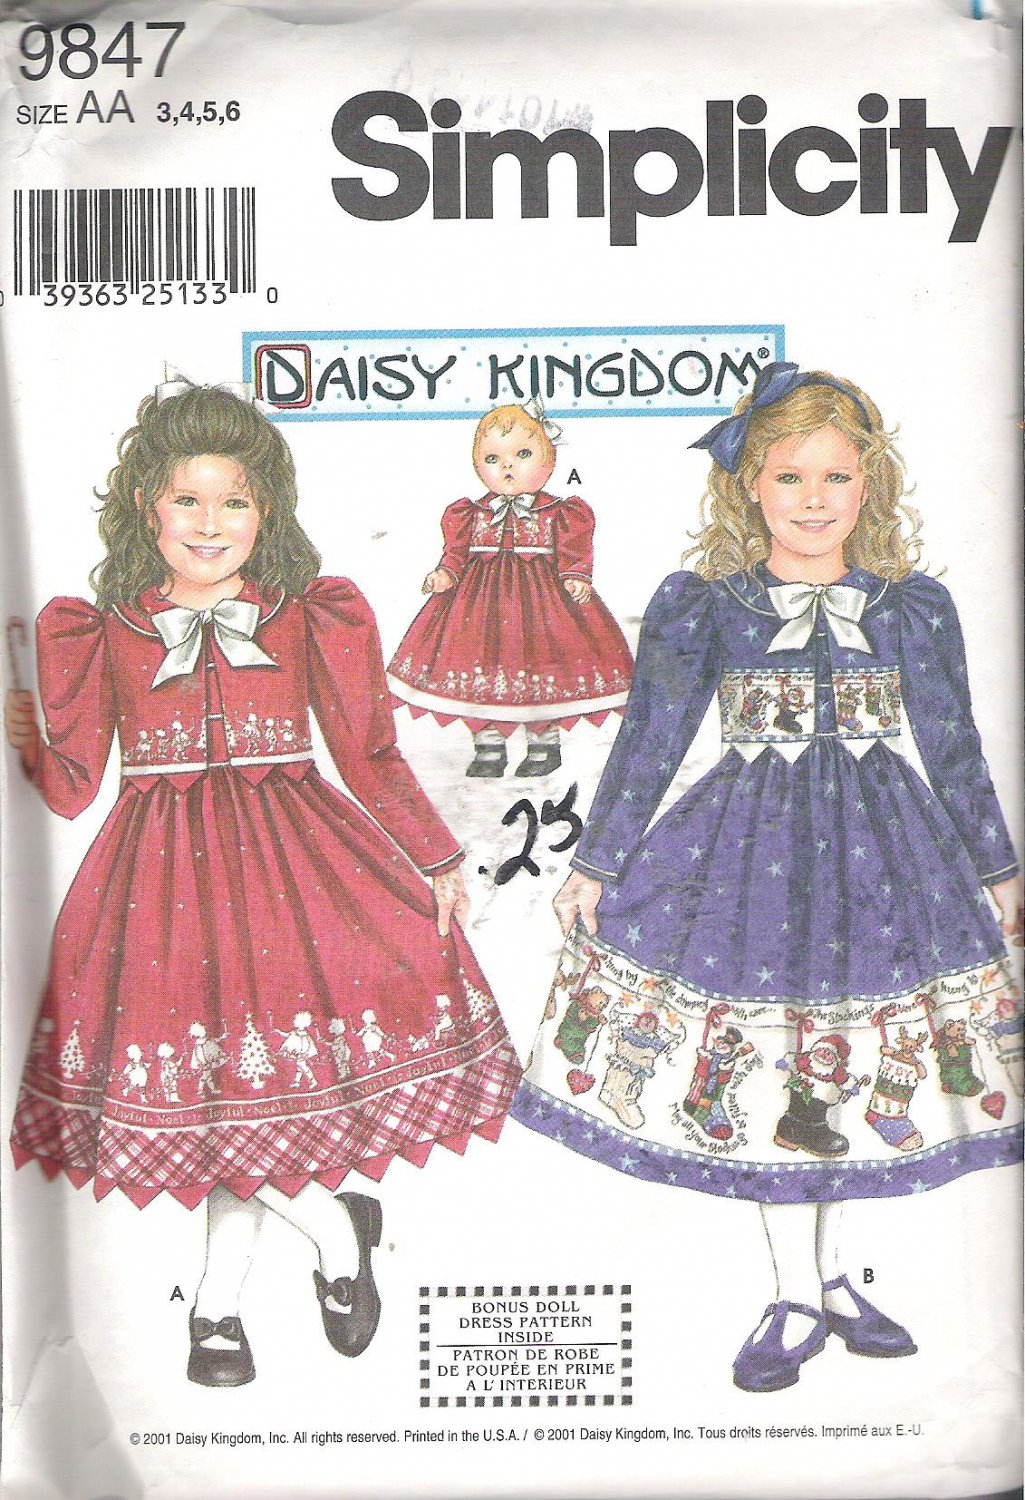 Simplicity Daisy Kingdom Childs Girls Dress Jacket Matching Doll Clothes Size 3-6 Uncut